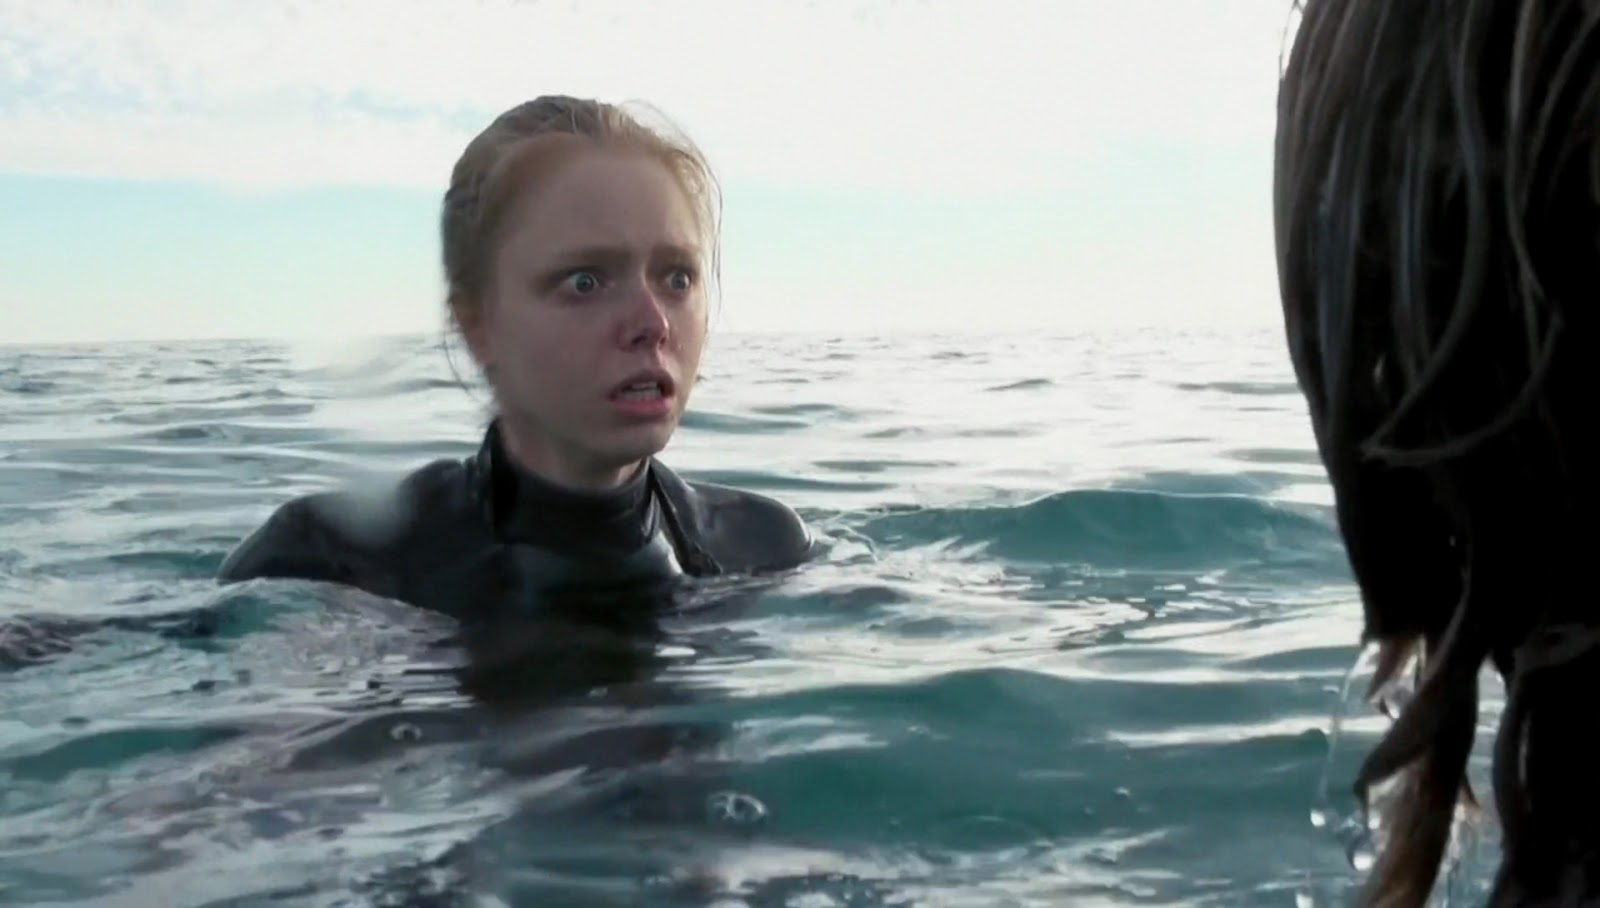 Cinehouse open water 3 cage dive 2017 review by sandra harris - Open water 3 cage dive ...